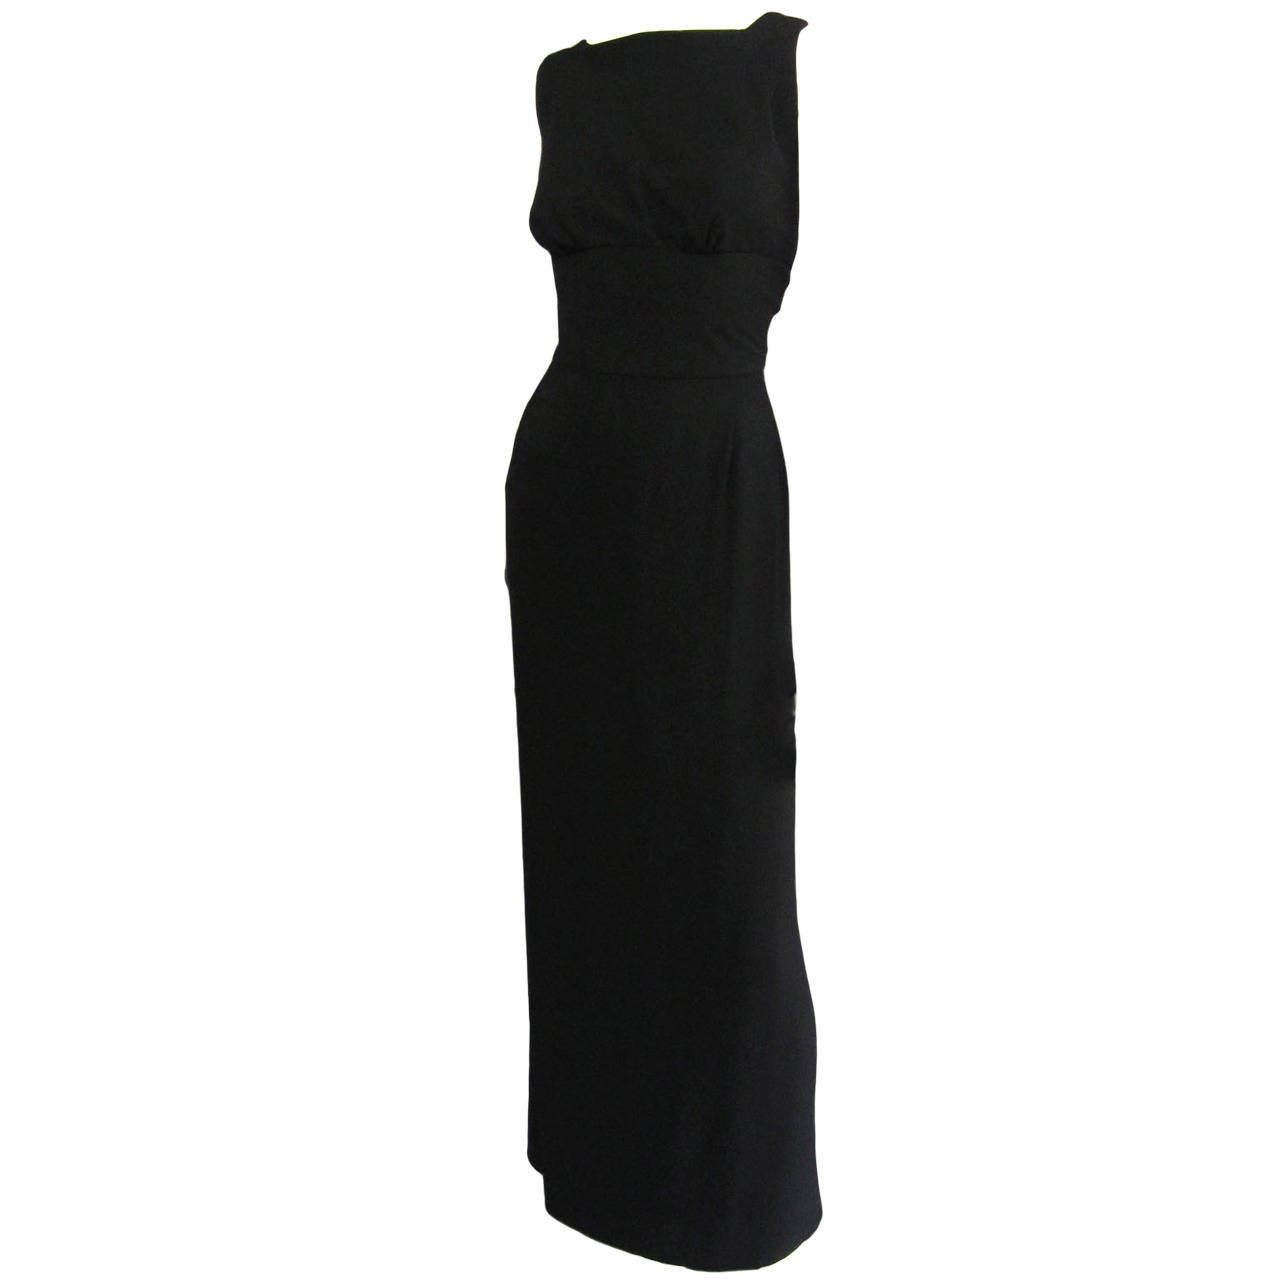 NORMAN NORELL Black Column Evening Gown with Back Tie Detail For Sale